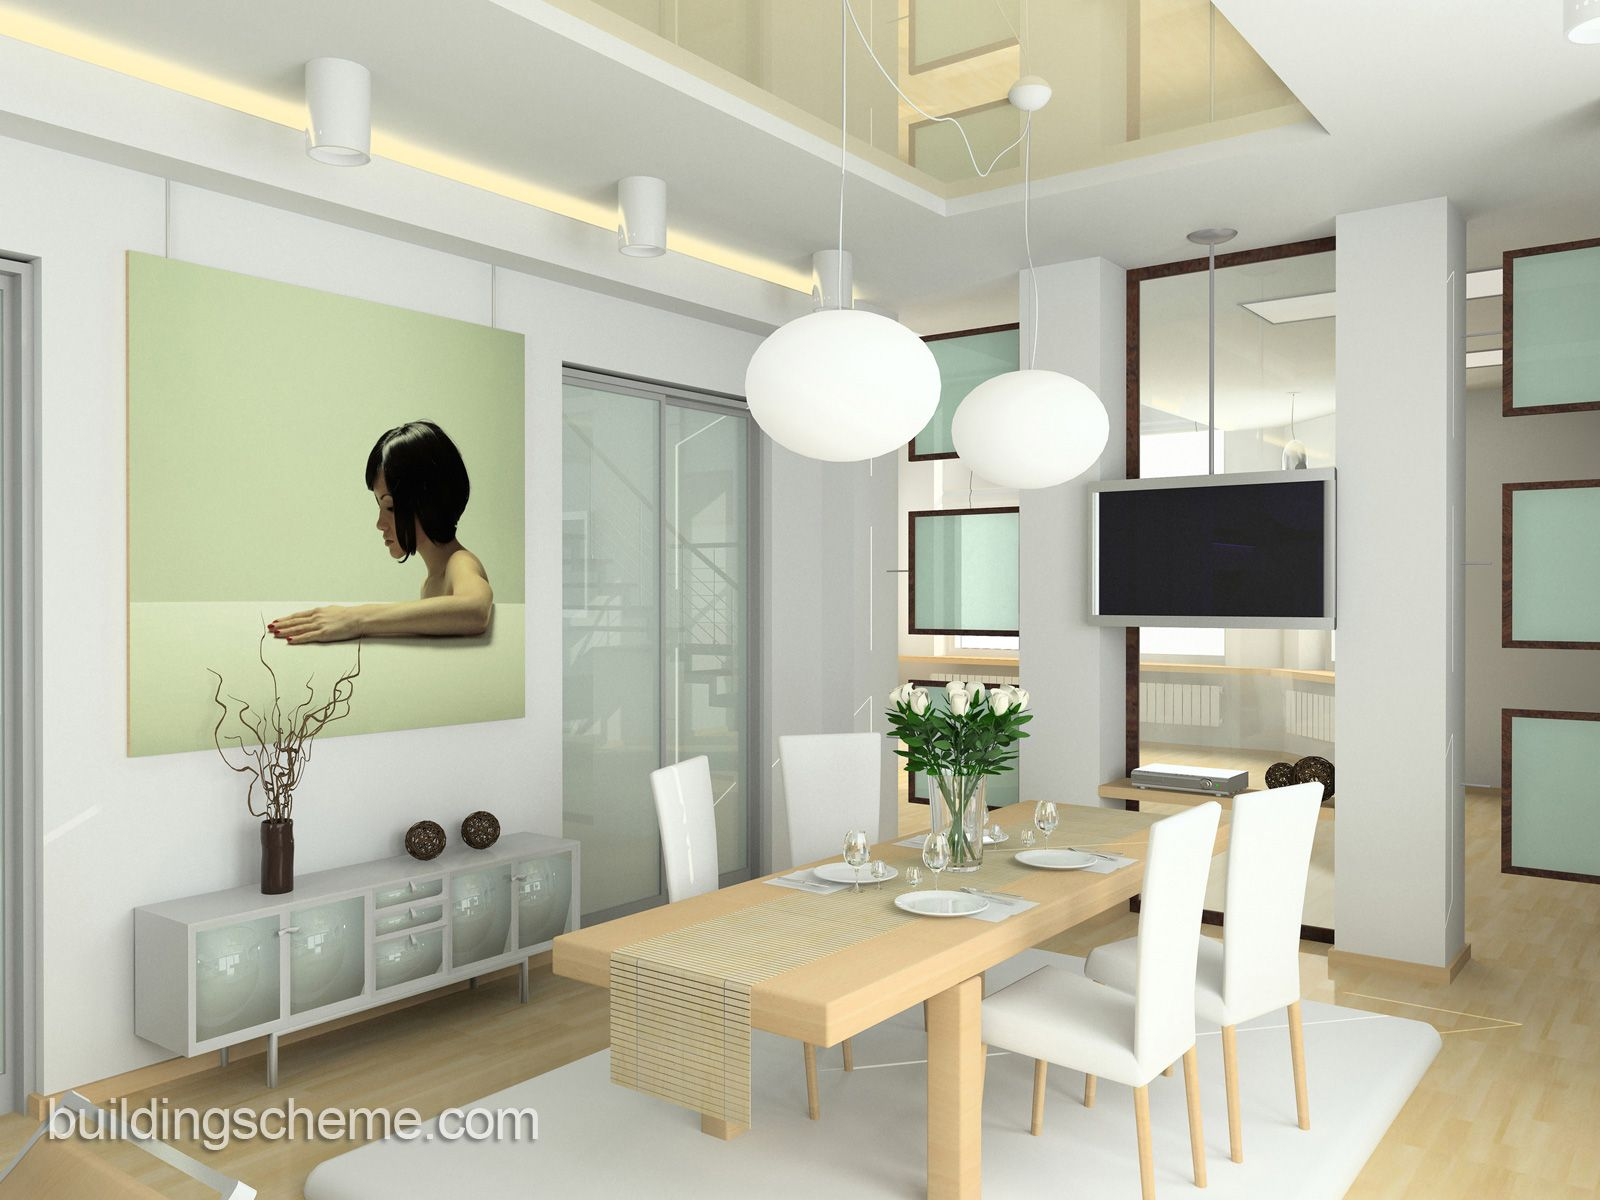 Modern Dining Room Design With Mango Wood Dining Chairs And Glass Top  Designs: Modern White Dining Tables And Chairs For Small Dining Cum Living  Room Design